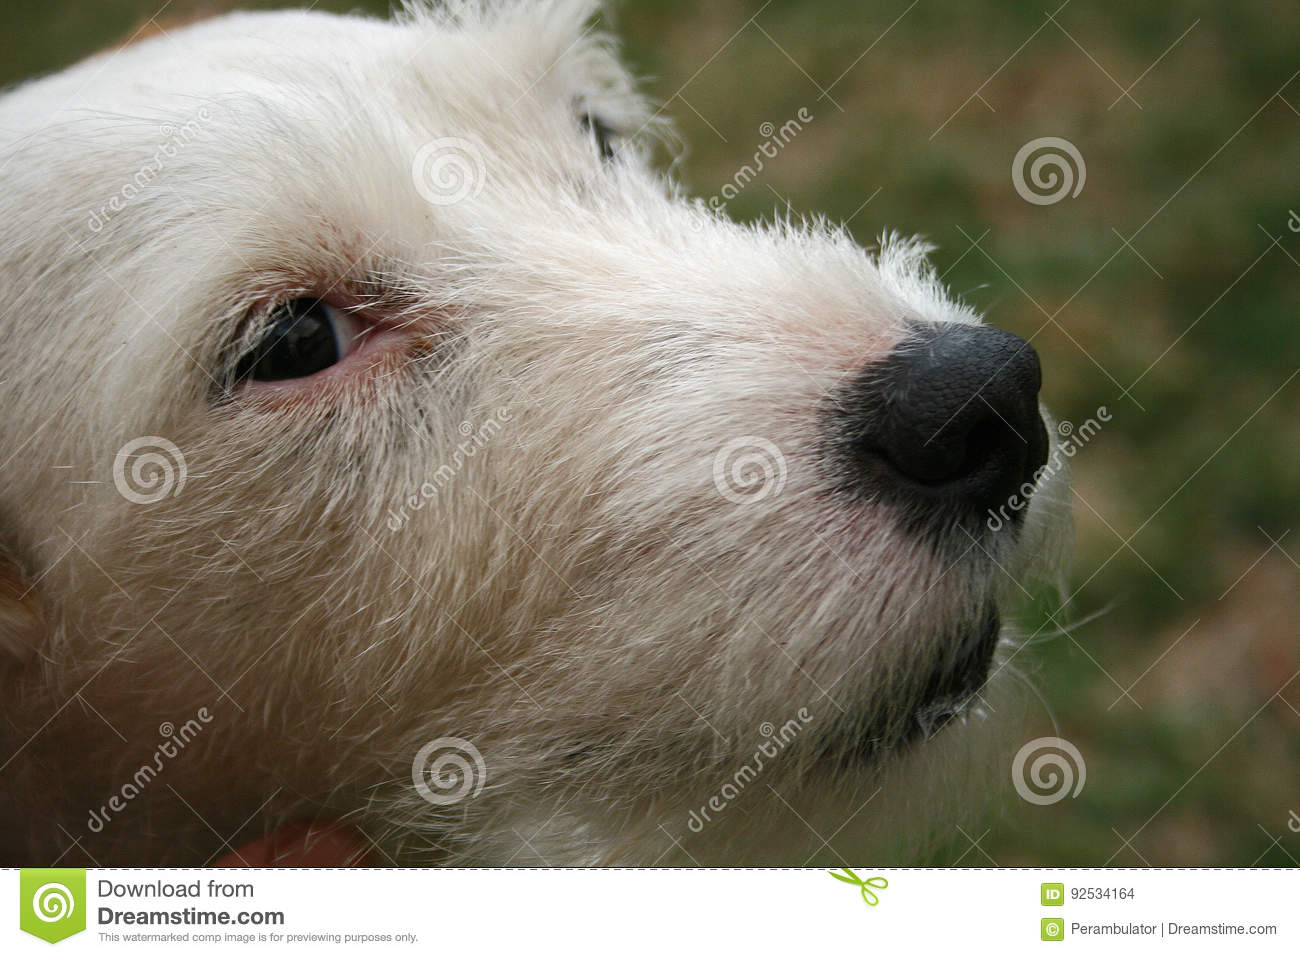 JACK RUSSELL TERRIER FACE